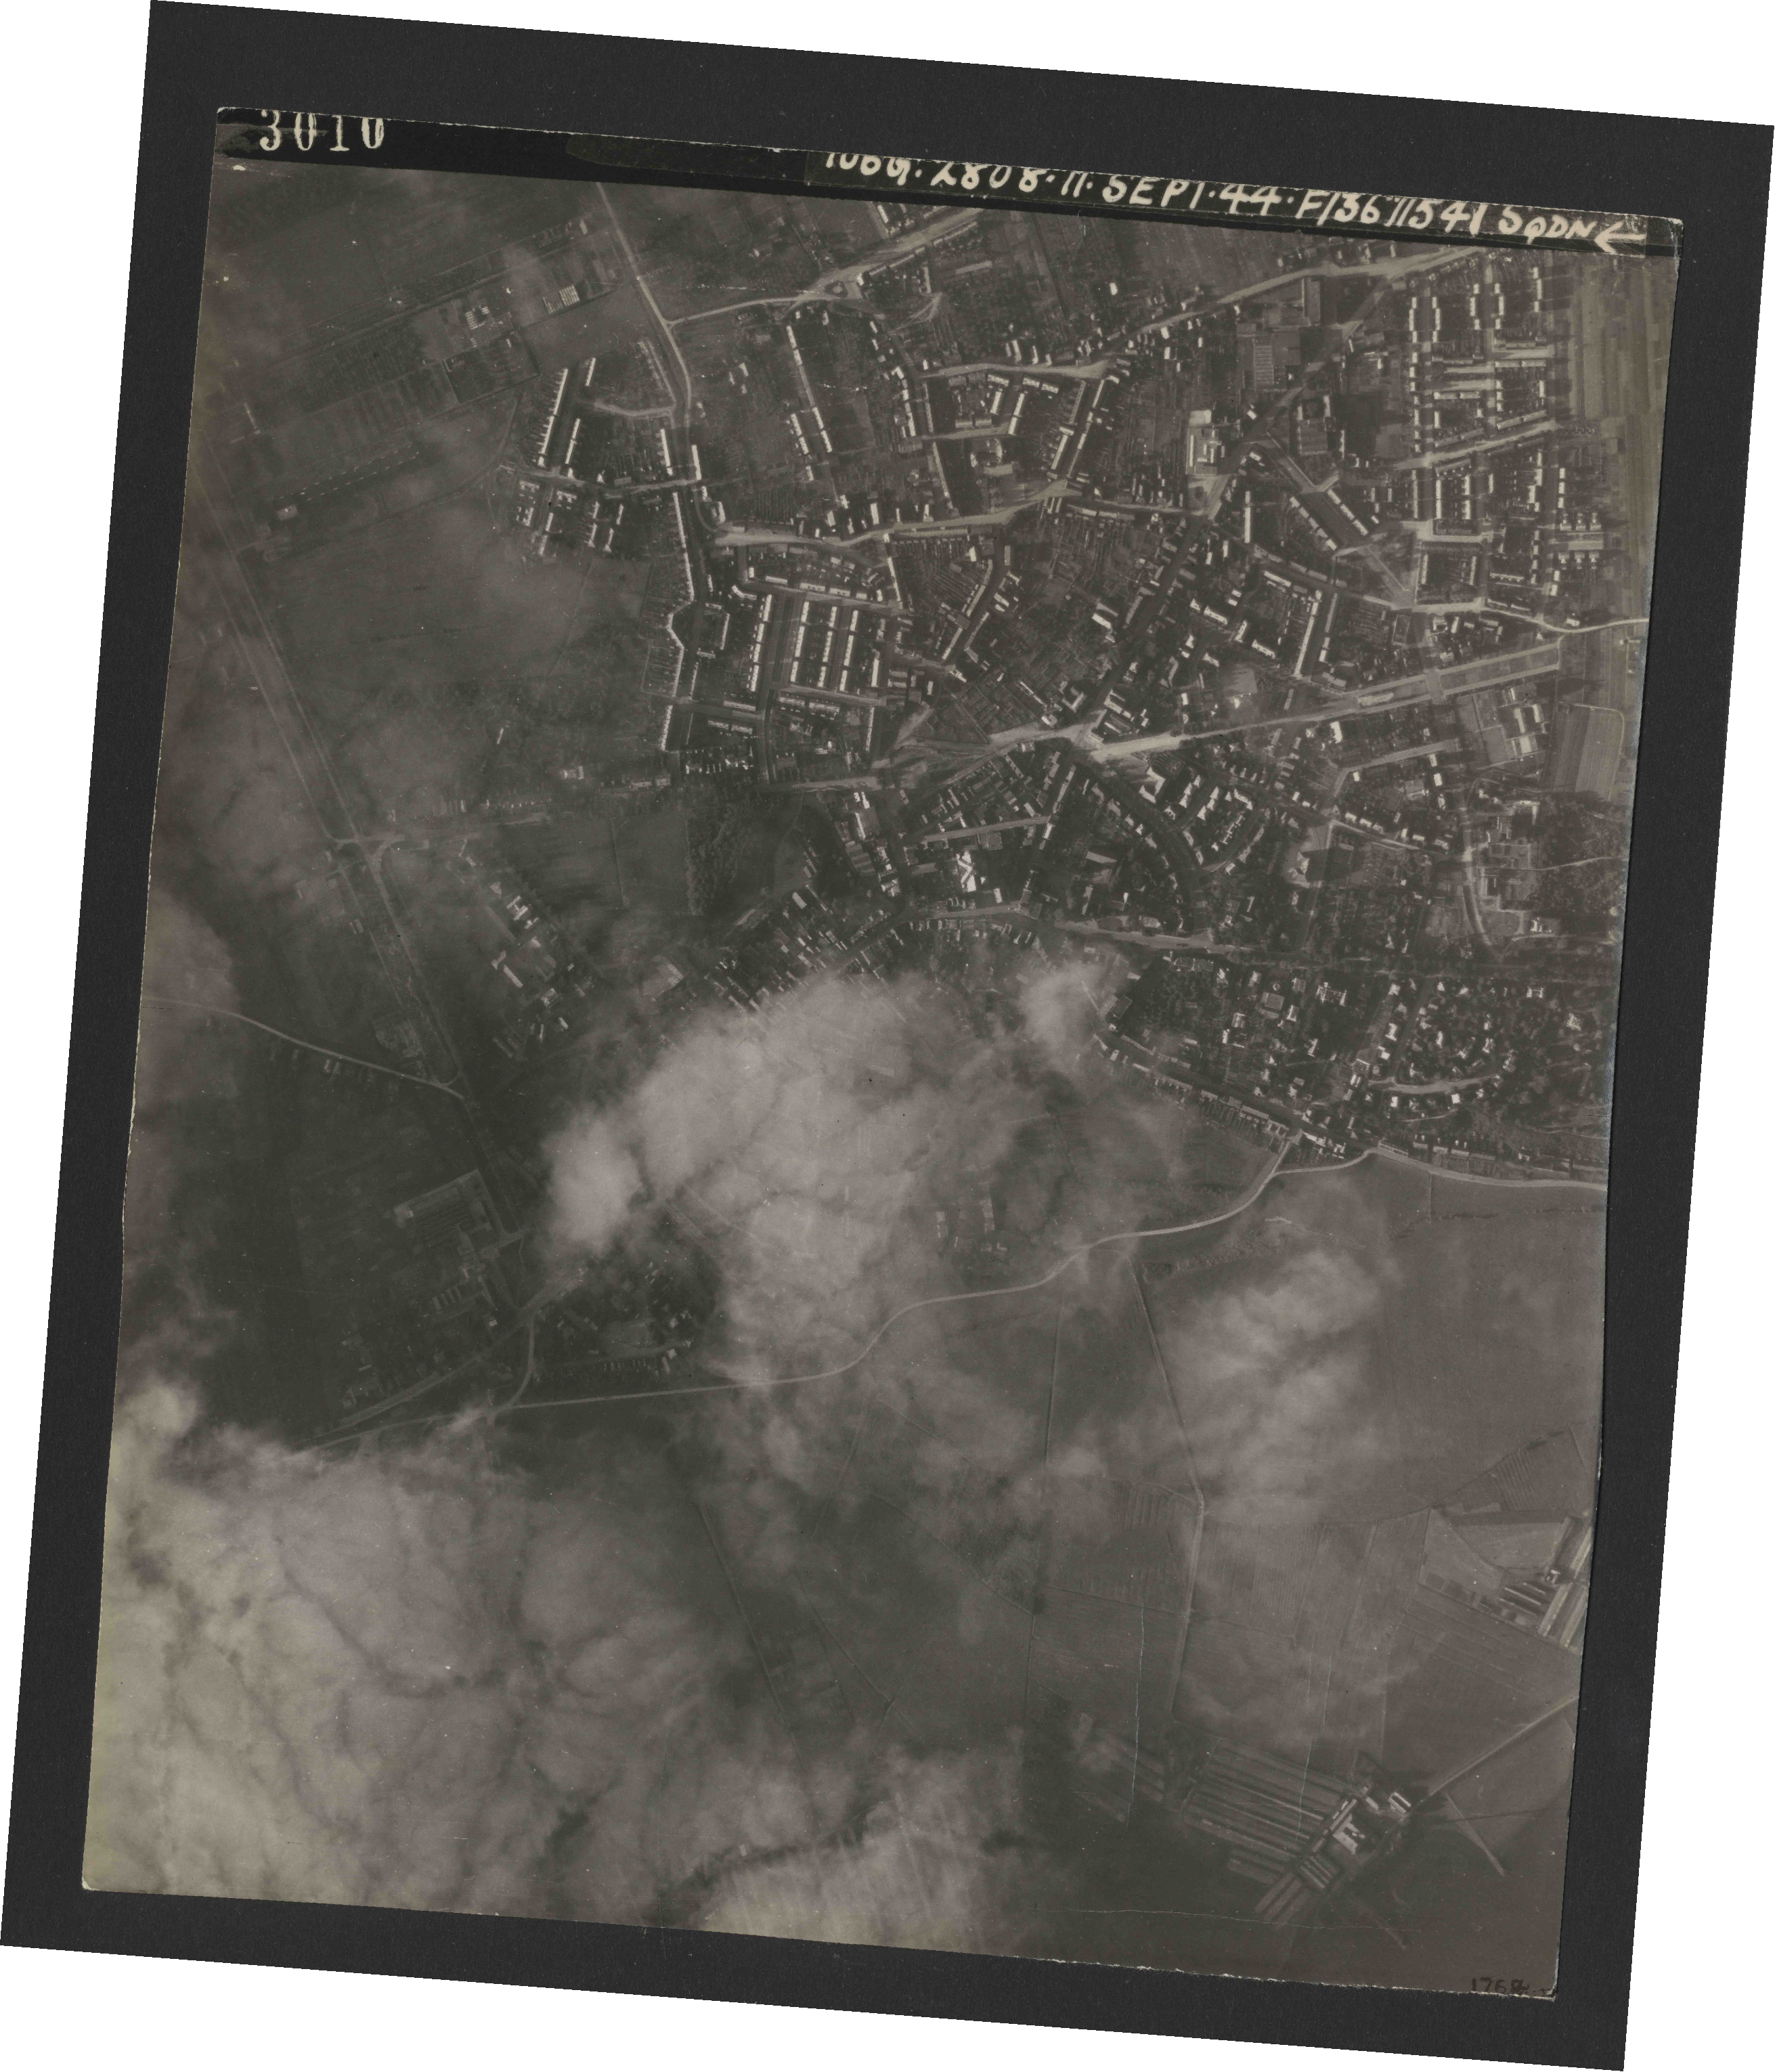 Collection RAF aerial photos 1940-1945 - flight 312, run 01, photo 3010